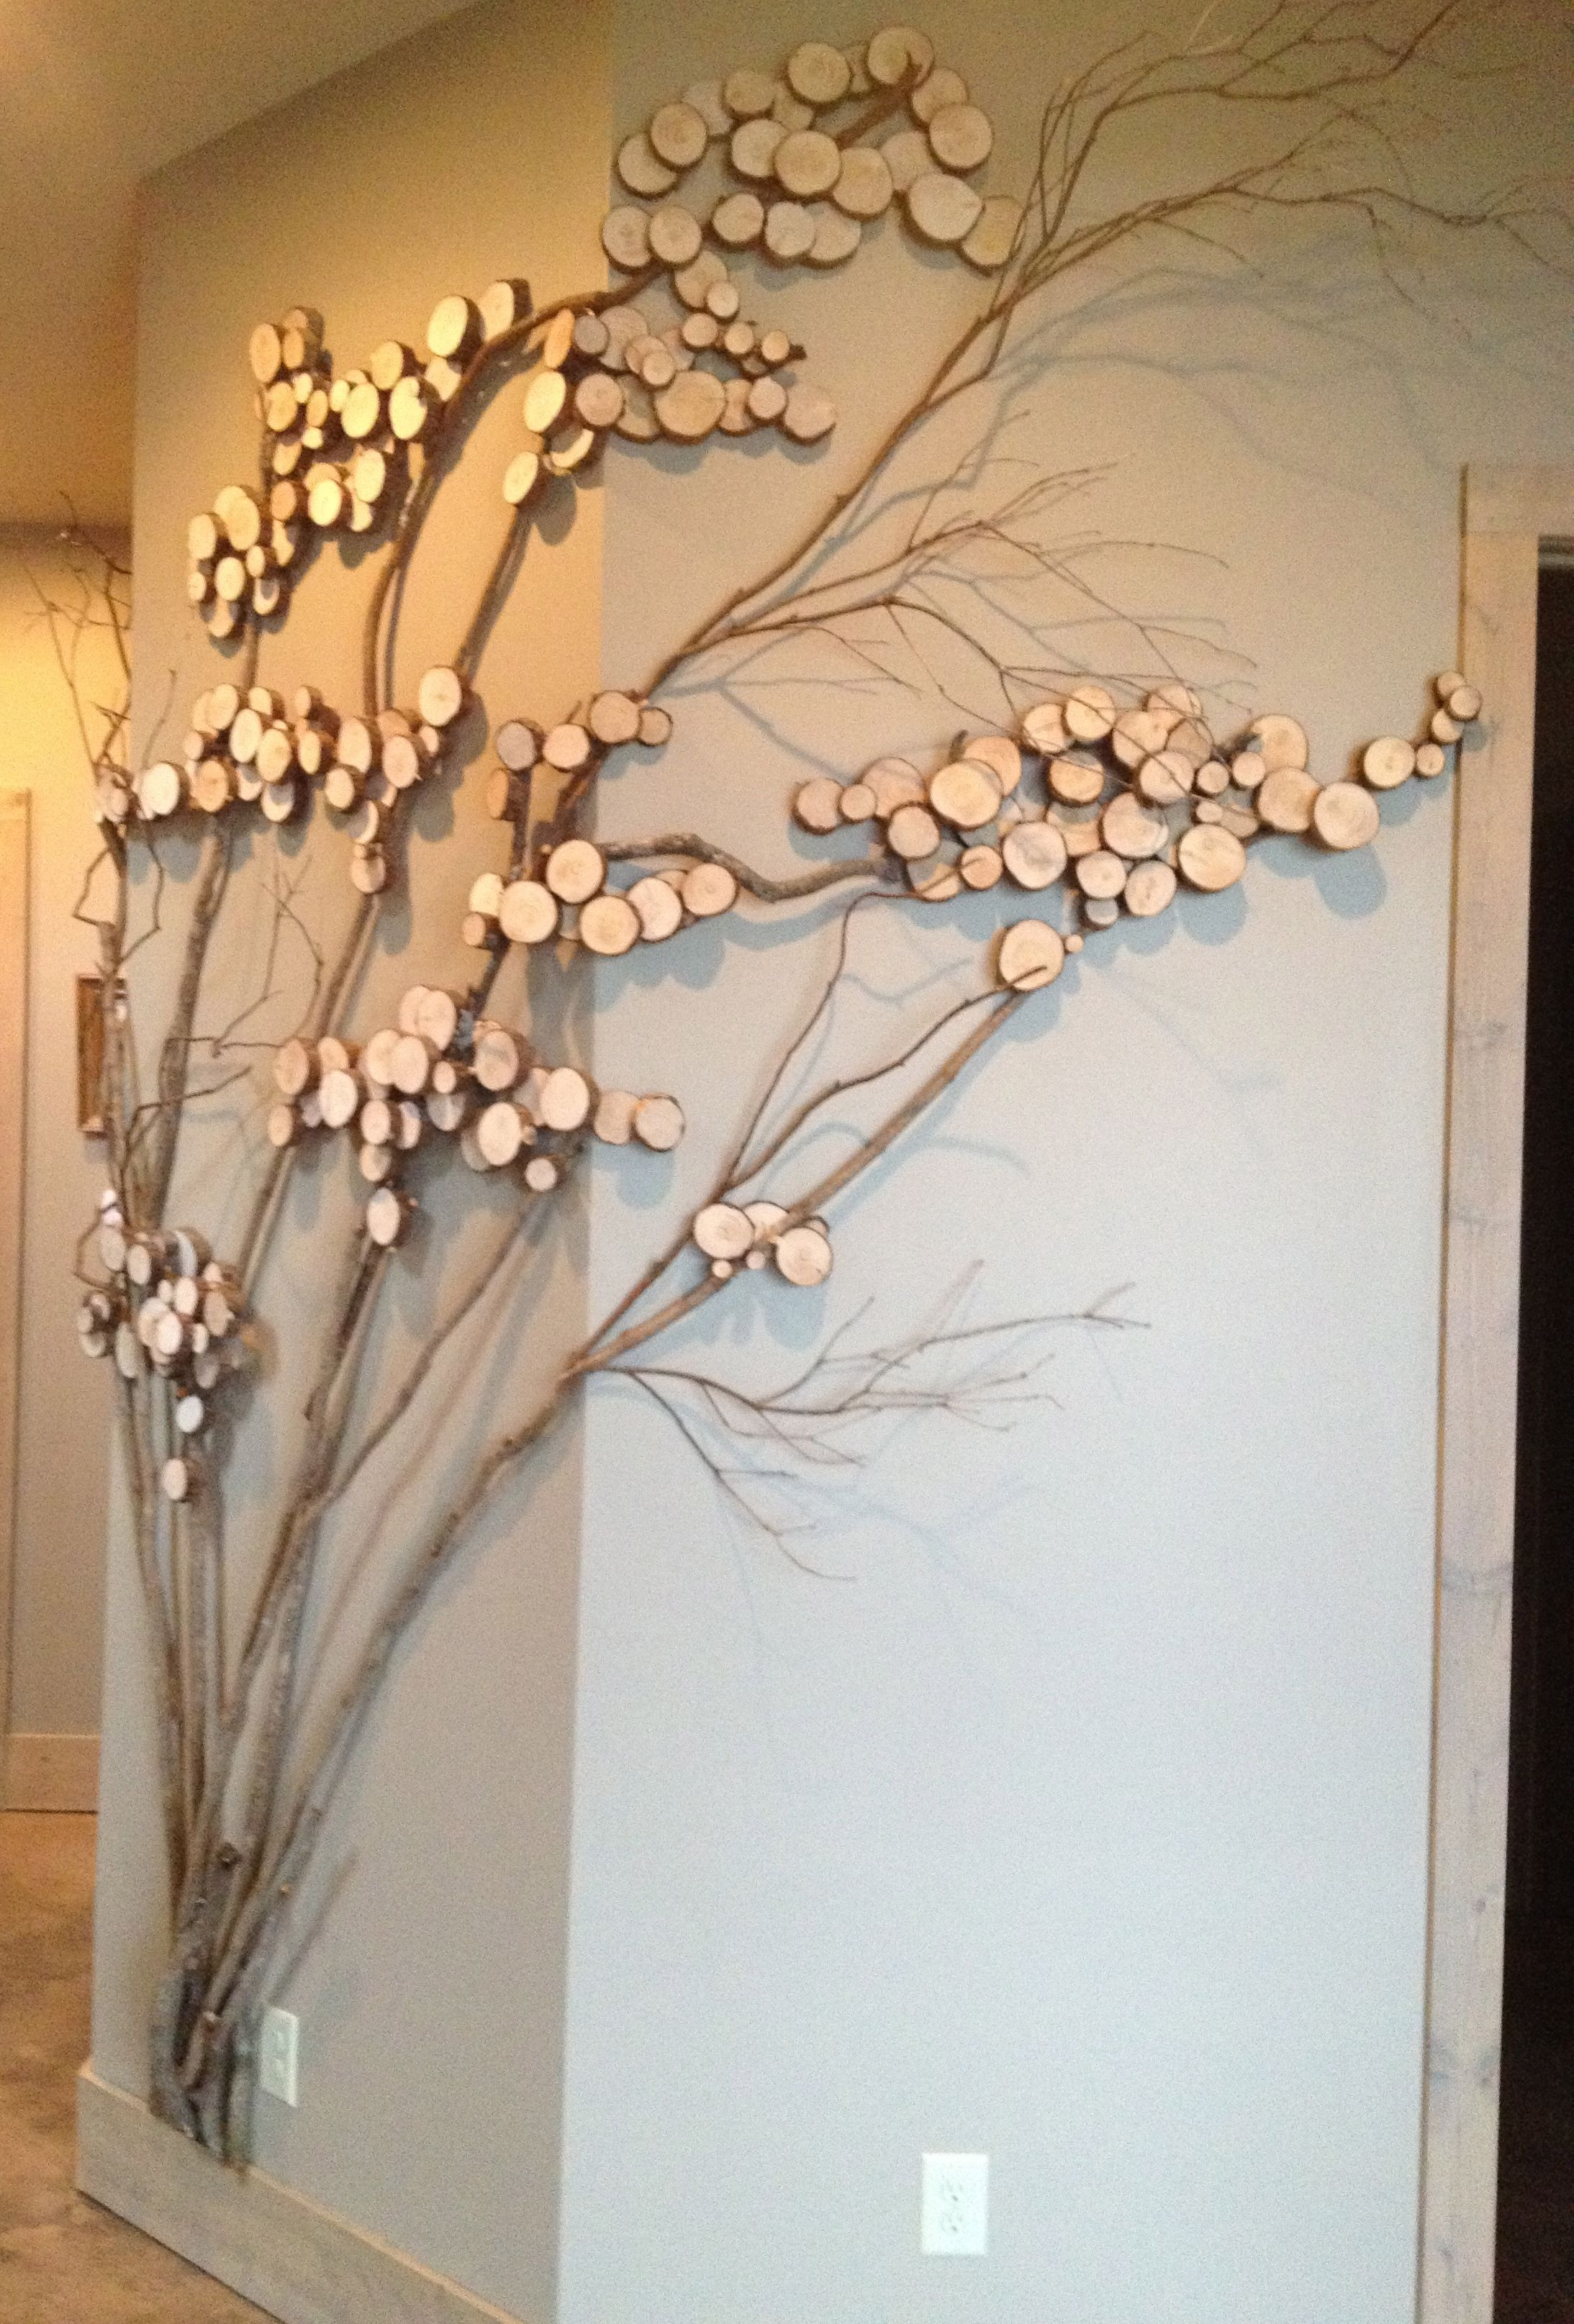 Decoration Murale Arbre En Bois Ramas Y Tapones Ideas Pinterest Decoration Deco And Maison